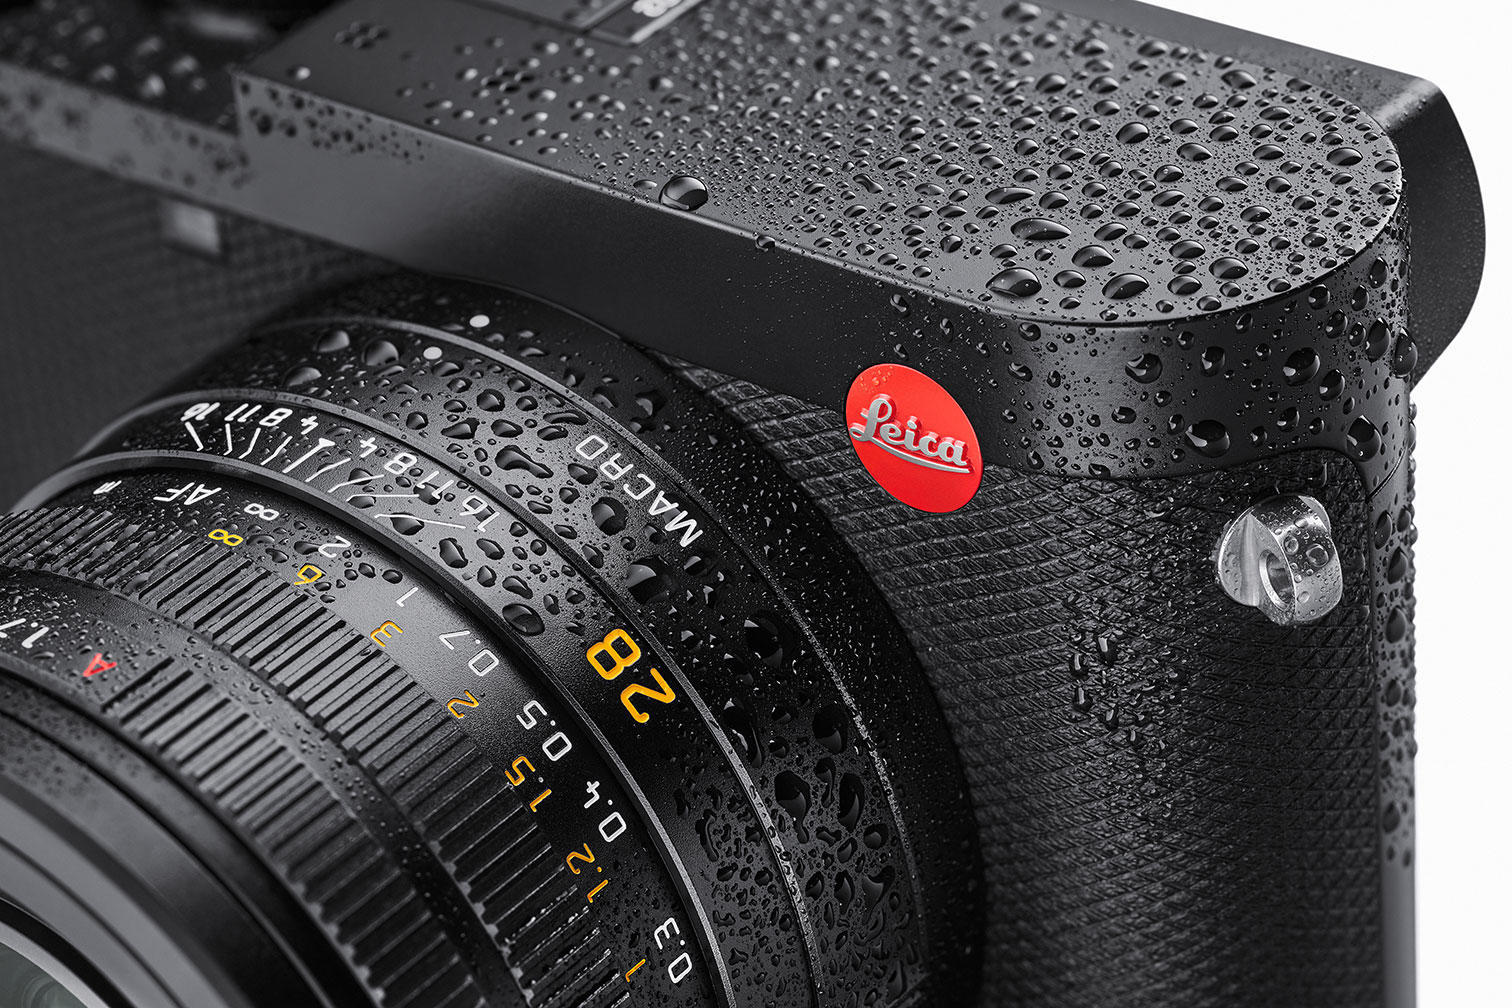 leica q2 weather sealed